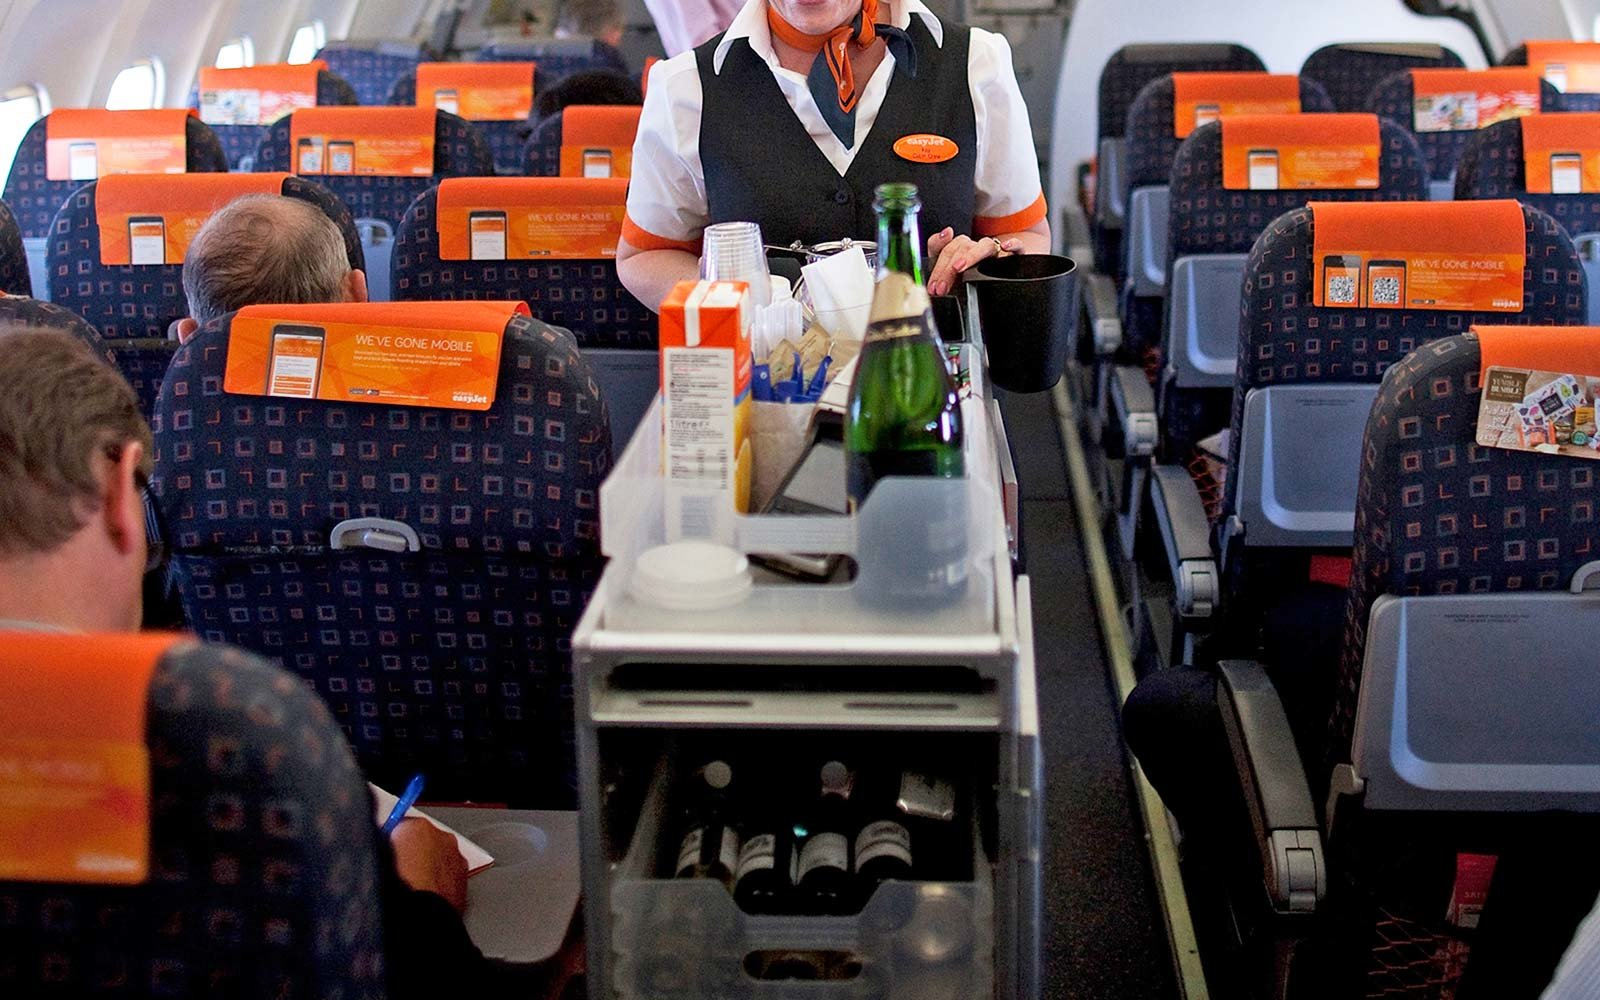 Easyjet Passenger Shocked To Receive An In Flight Meal